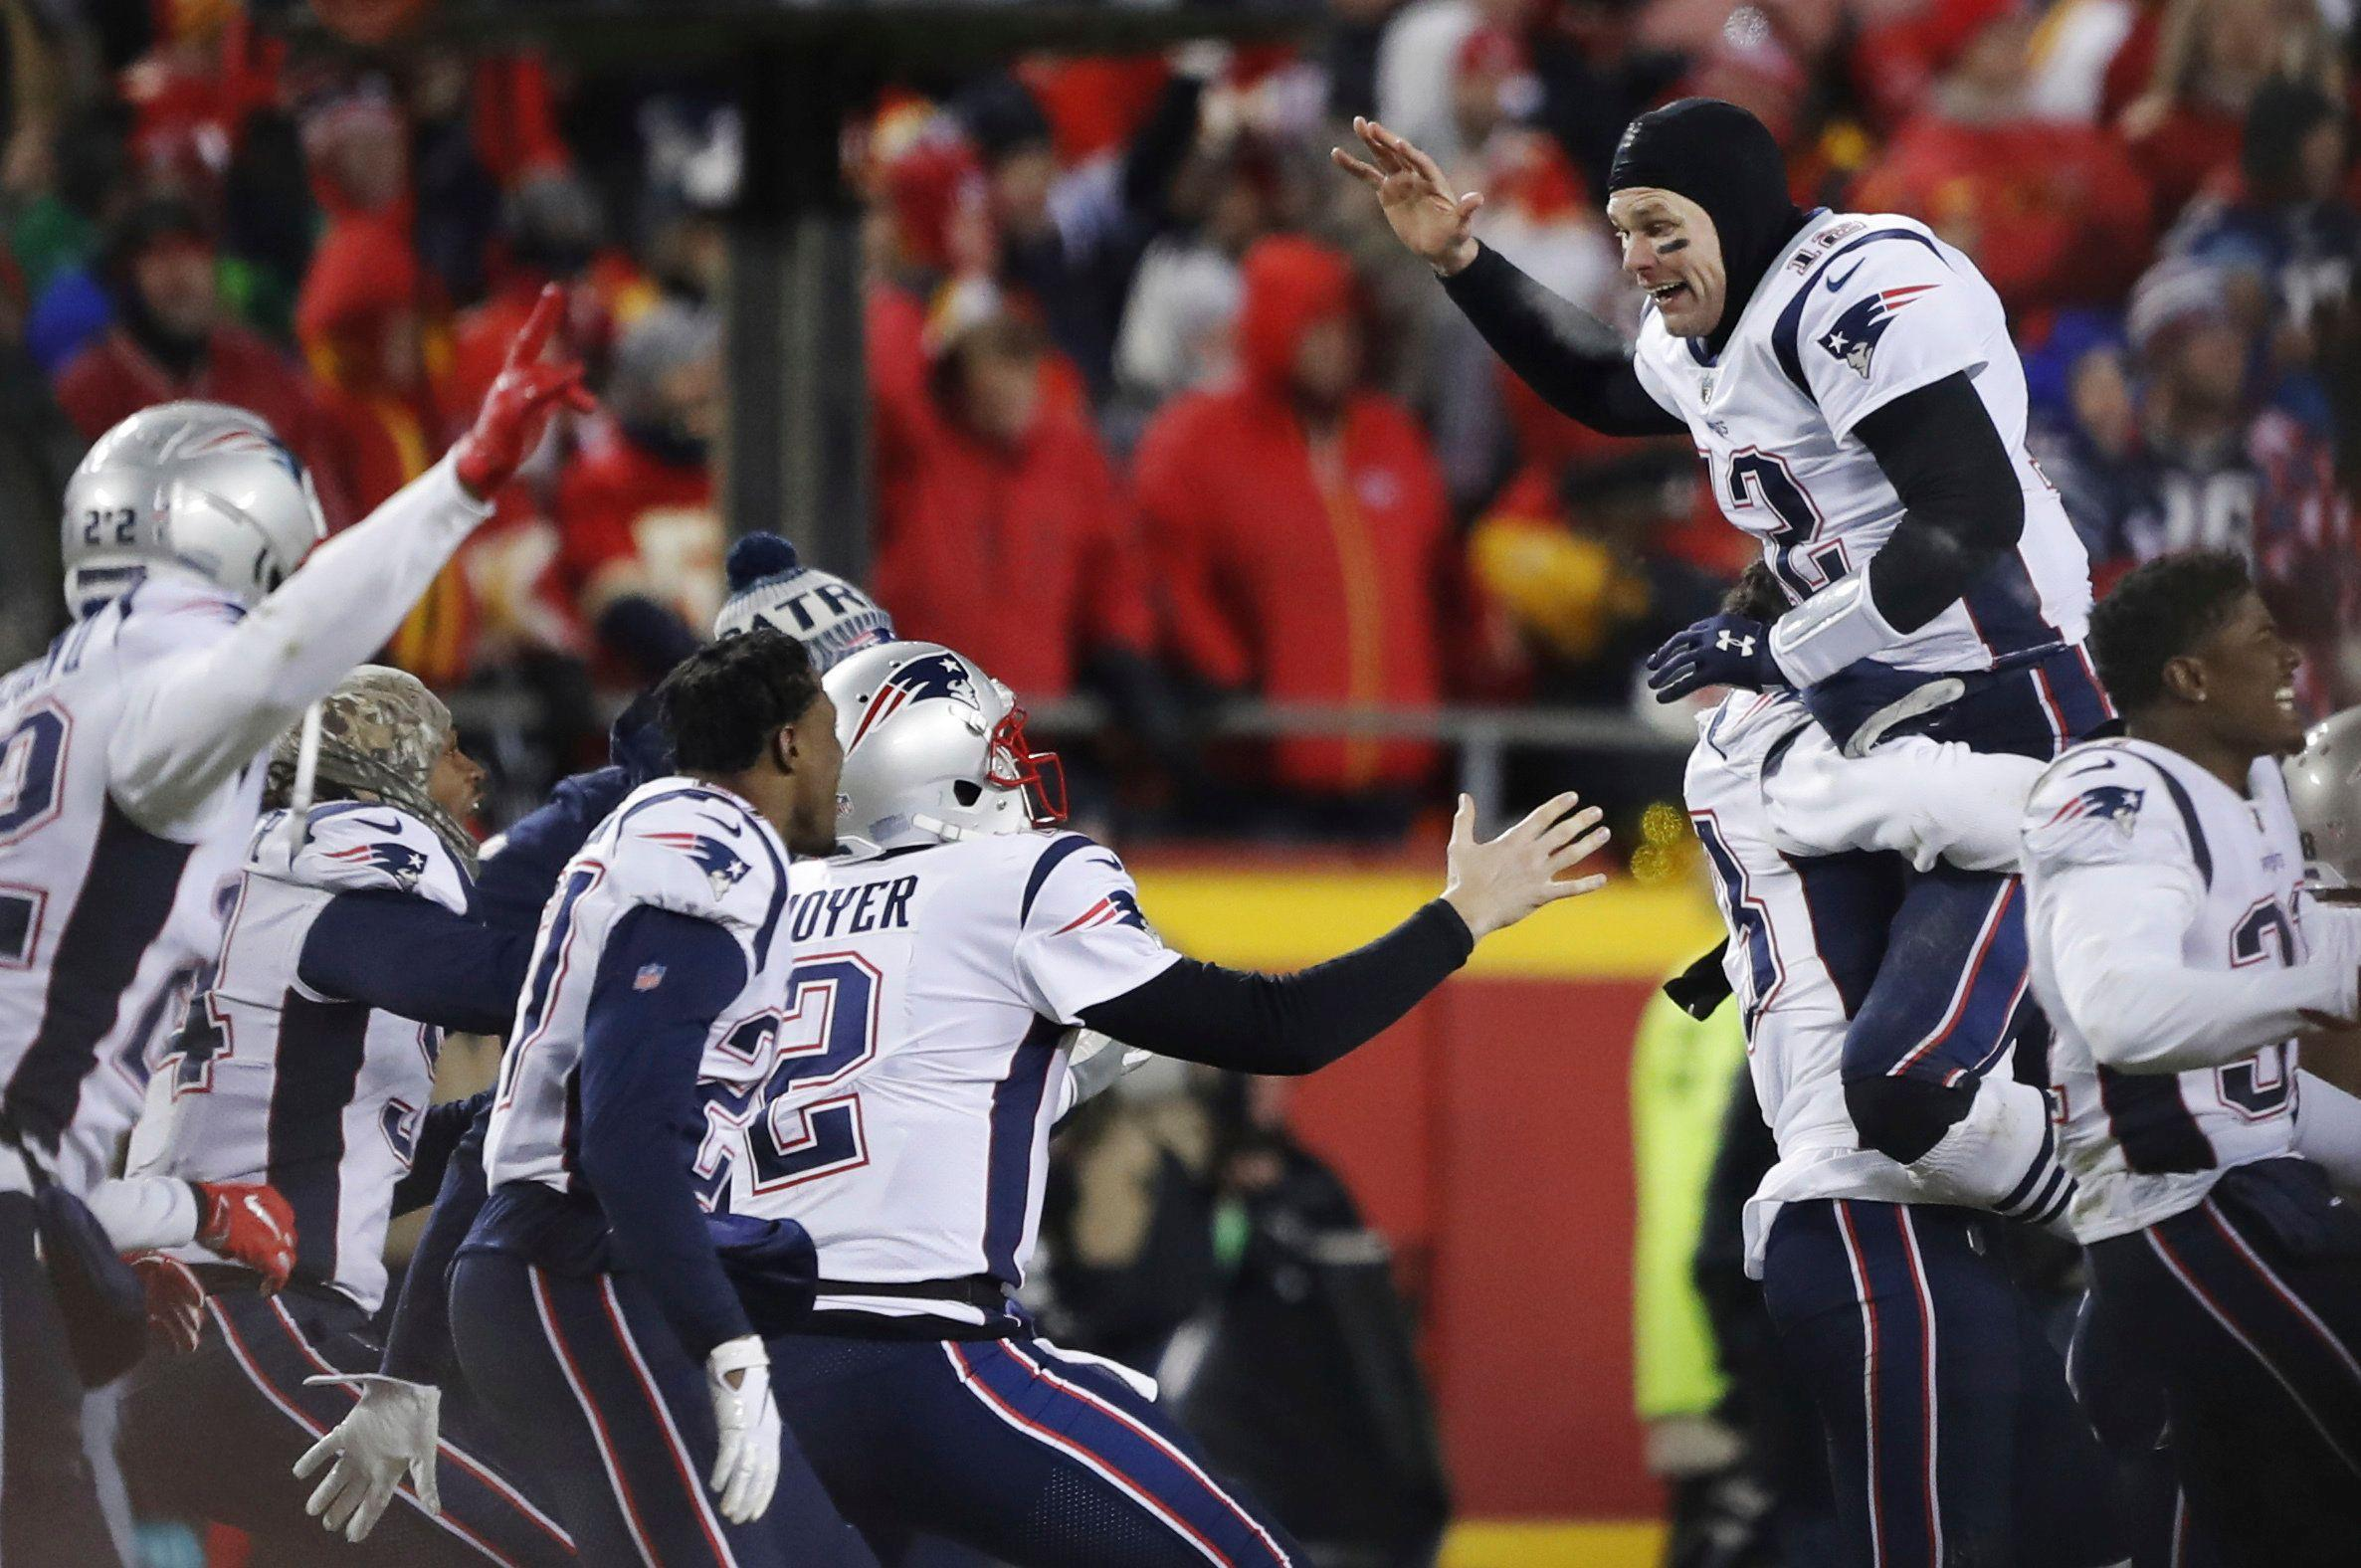 231b9c3c7 Super Bowl 53 ticket prices are falling because of Patriots